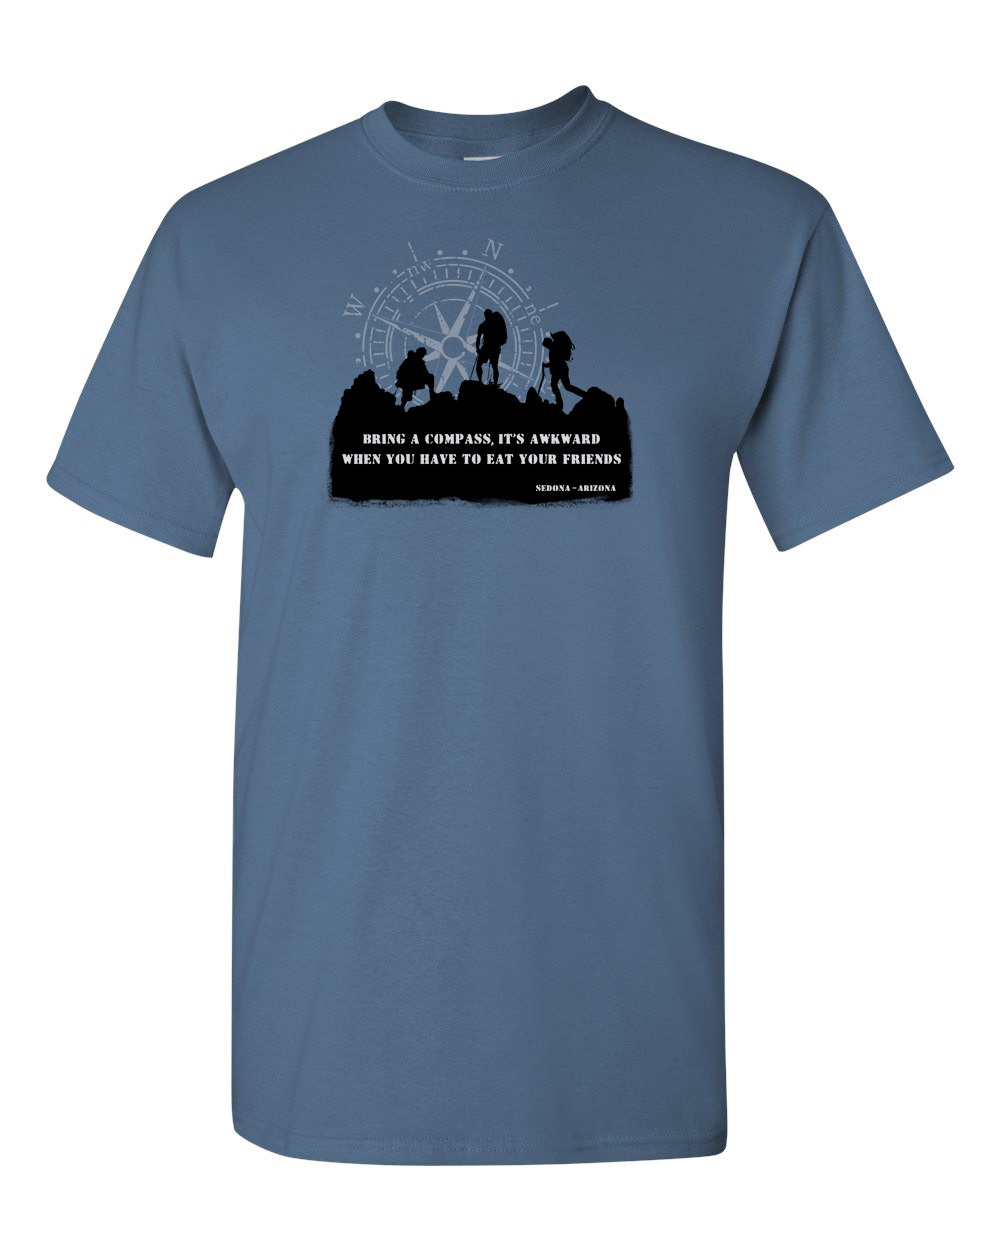 Bring A Compass It's Awkward to Have to Eat Your Friends Humor T-shirt Sedona Hiking